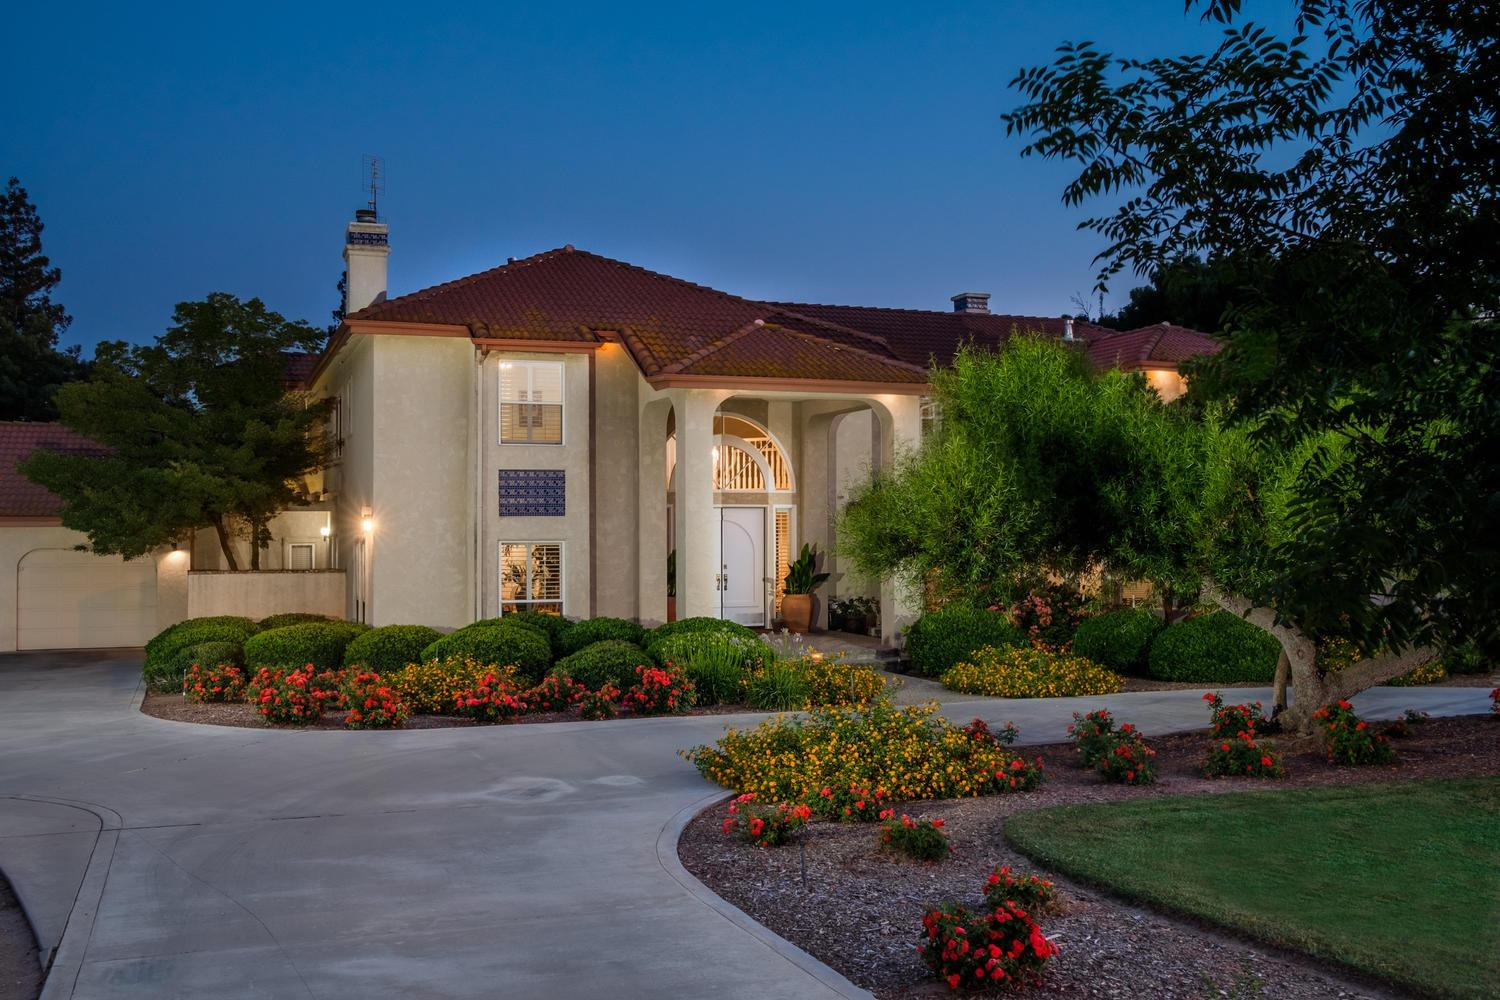 This luxurious 6 bedroom, 5 1/2 bath property is surrounded by picture perfect landscaping, a pool, and tennis courts, which you can enjoy from the second-story master balcony. This home has a sunken living room, and office and two bedrooms on the first floor, with one being an isolated bedroom and bathroom; perfect mother-in-law or guests quarters. A large family room with a separate bar, wine cellar, and lounge area. The spacious kitchen and breakfast nook are bright and full of light with views of the gorgeous park-like backyard.  The wide cascading staircase leads to 3 additional bedrooms and the master suite.  The master has 2 walk-in closets, a large bathroom, jetted tub, and full patio balcony. This is an impressive property offers both luxury and privacy!